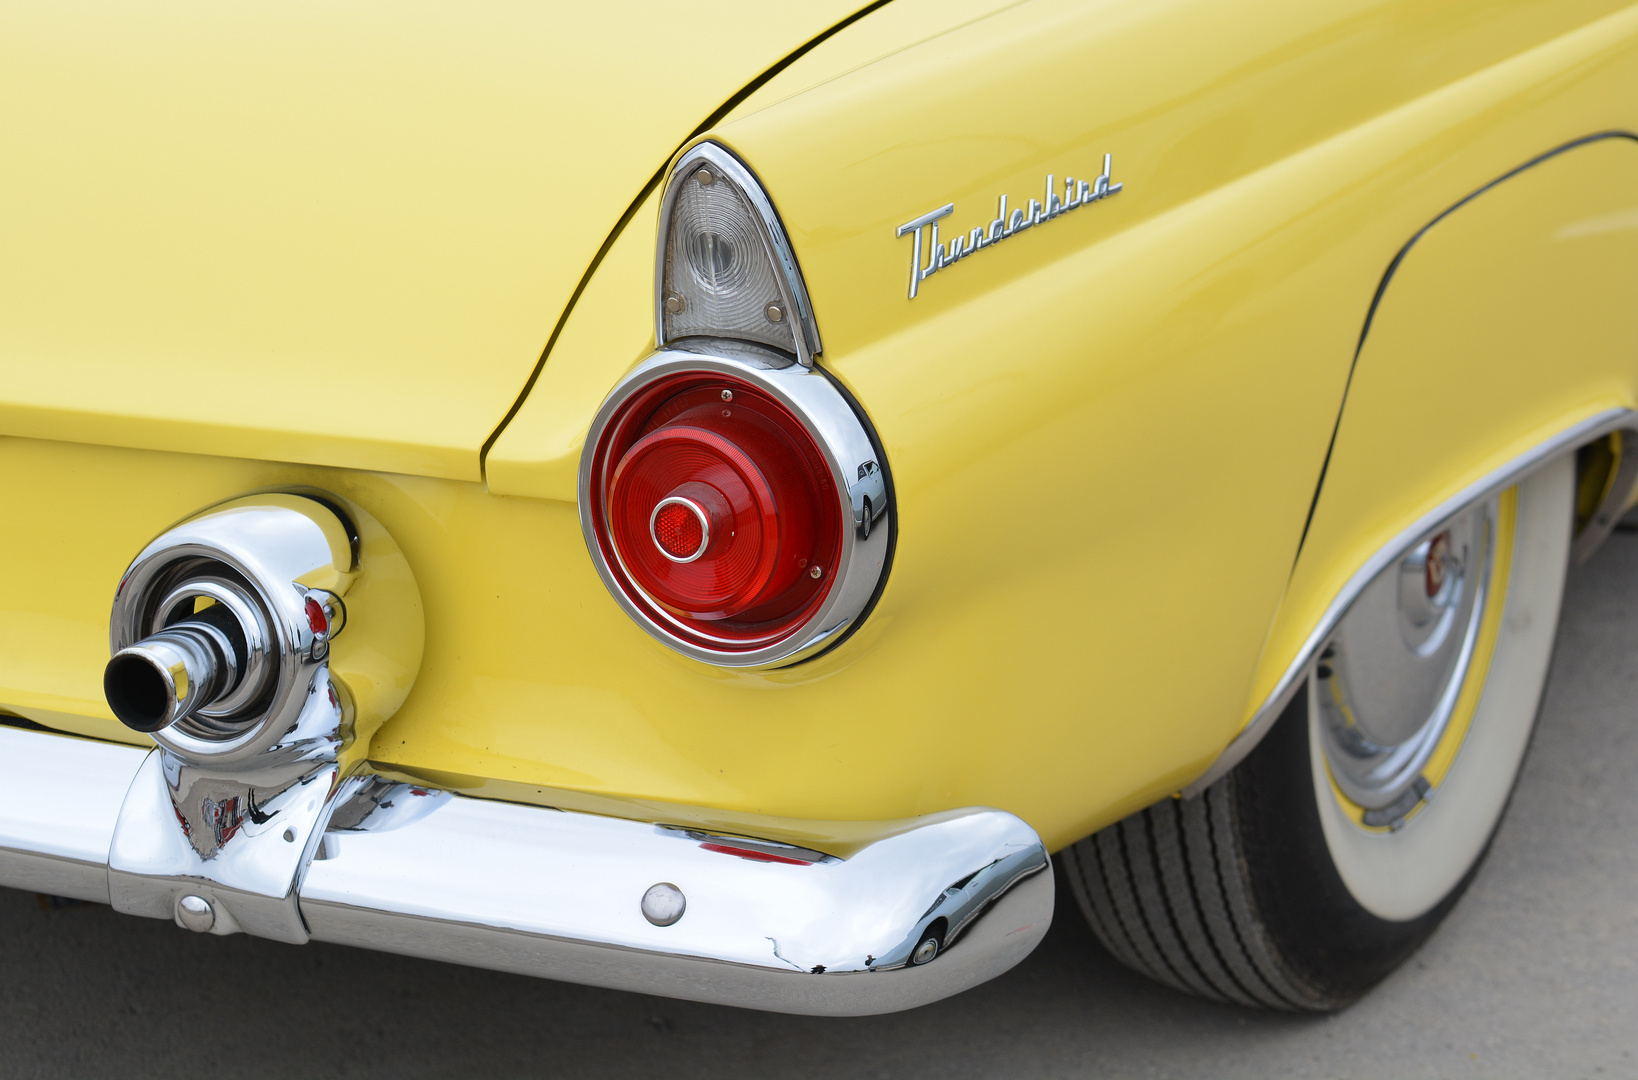 T-Bird - Ford Thunderbird 1956